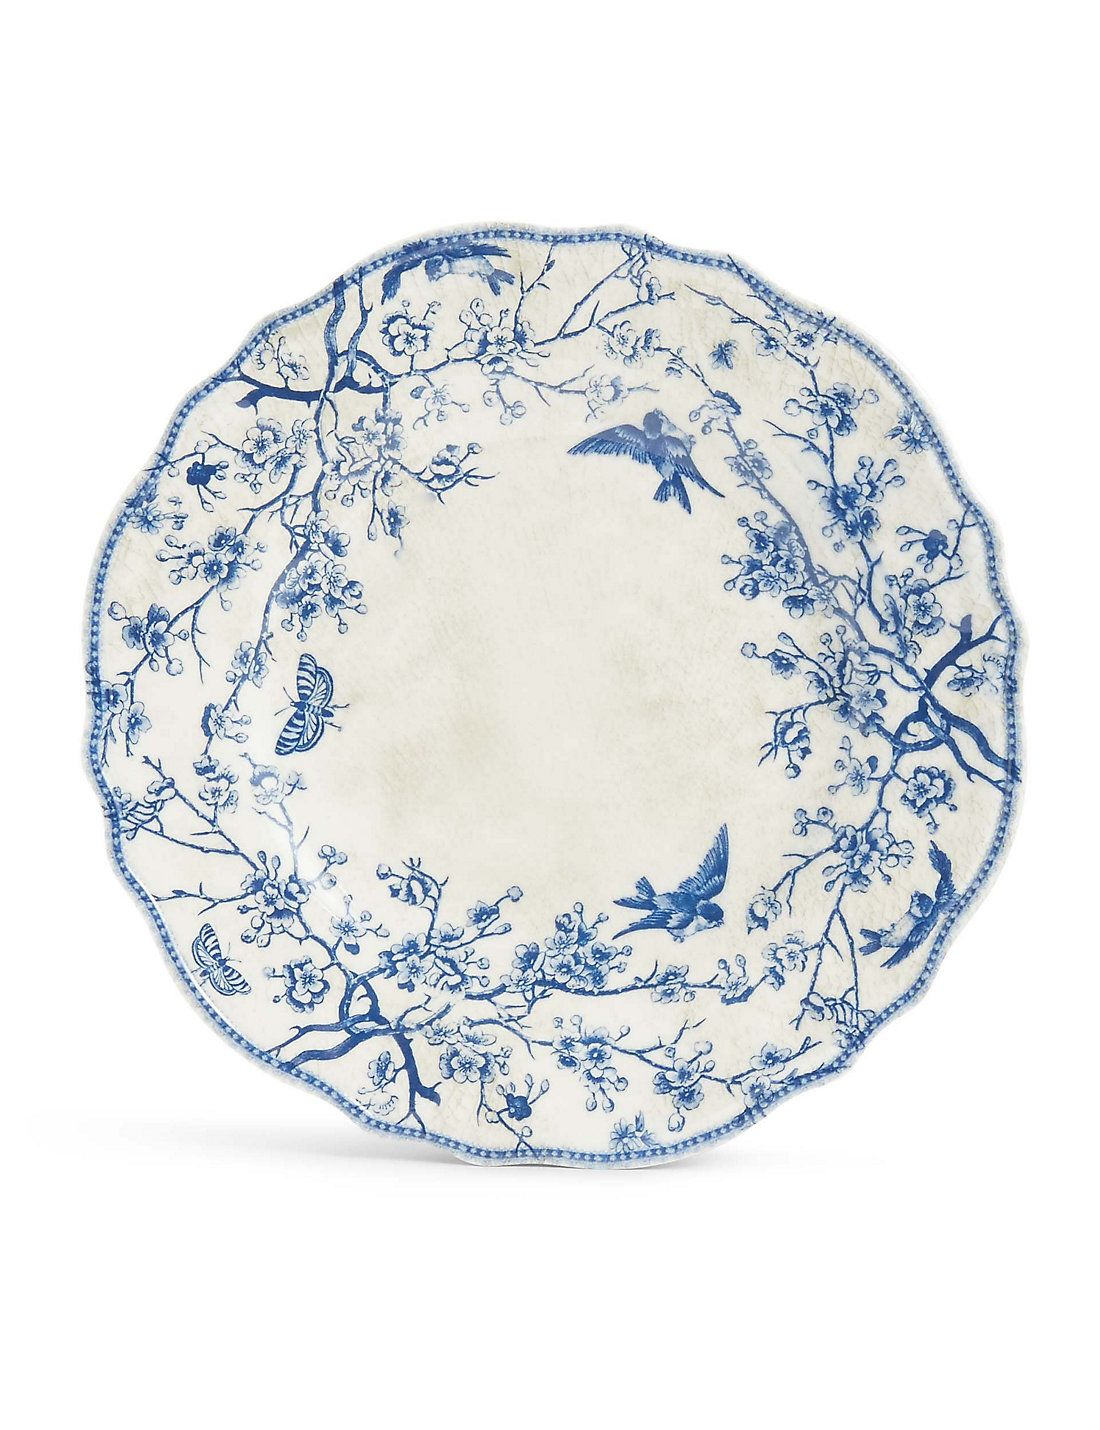 Dovecote Melamine Side Plate Plates Side Plates Blue And White China